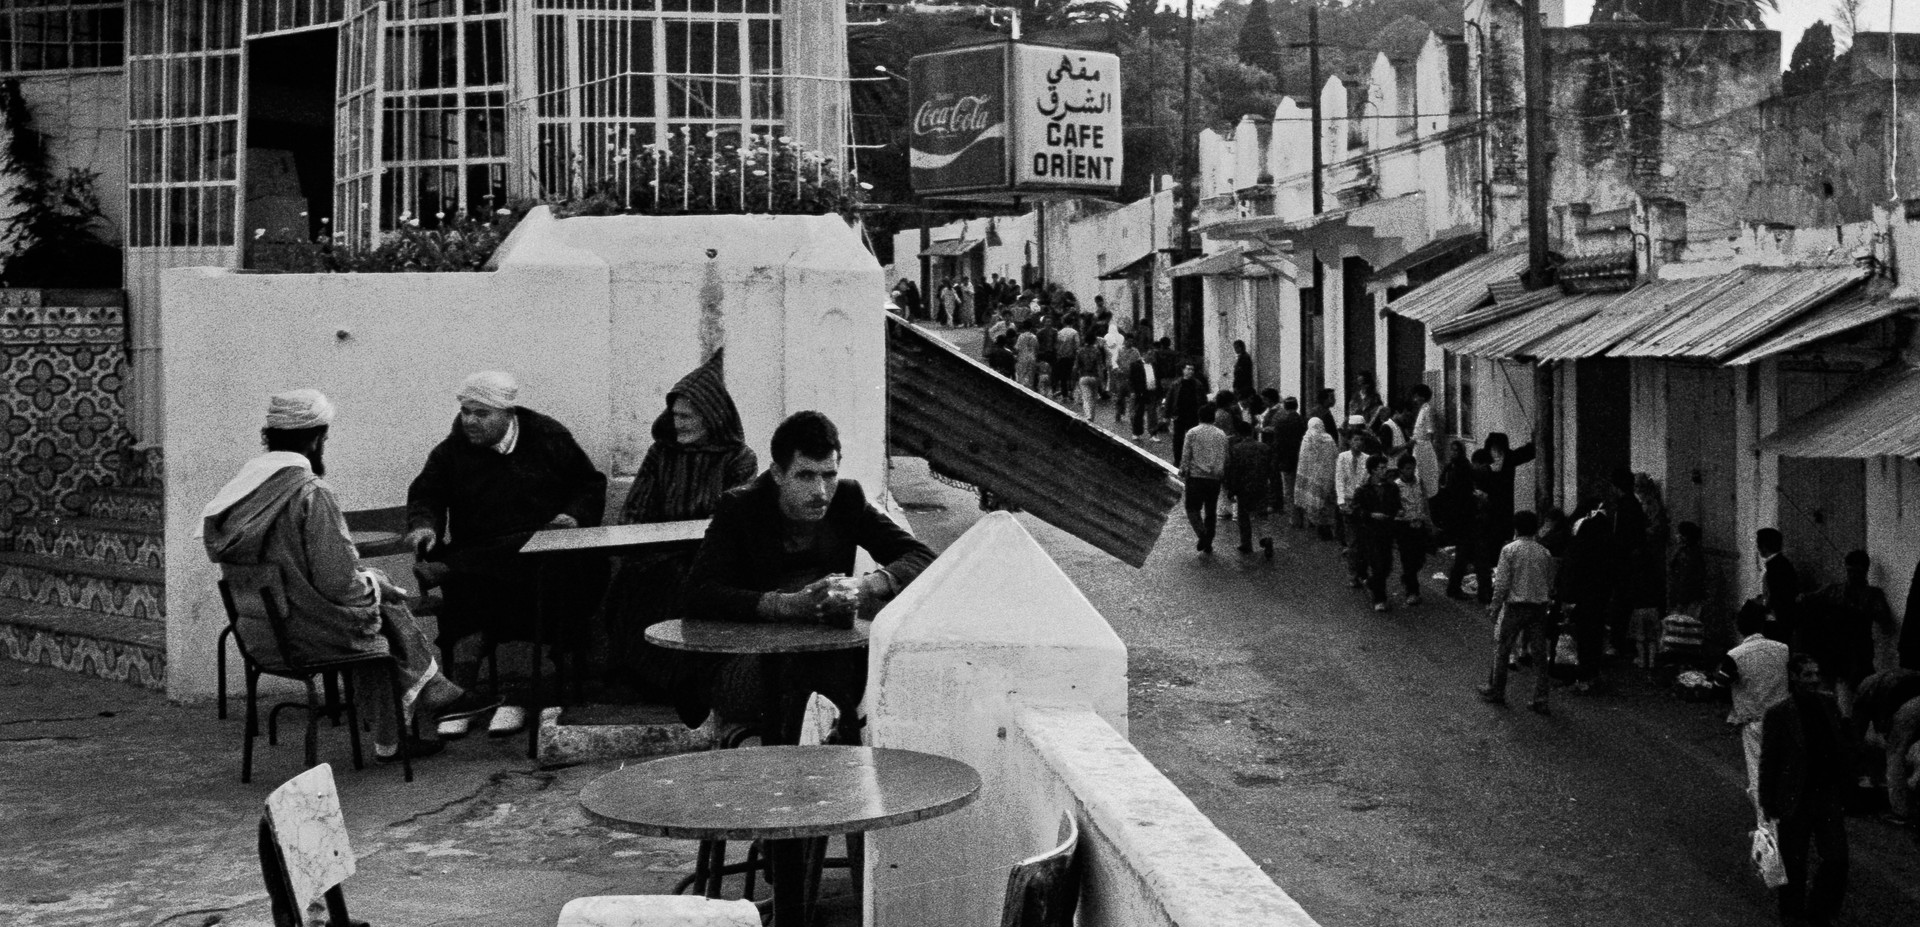 Tangier, Morocco 1986